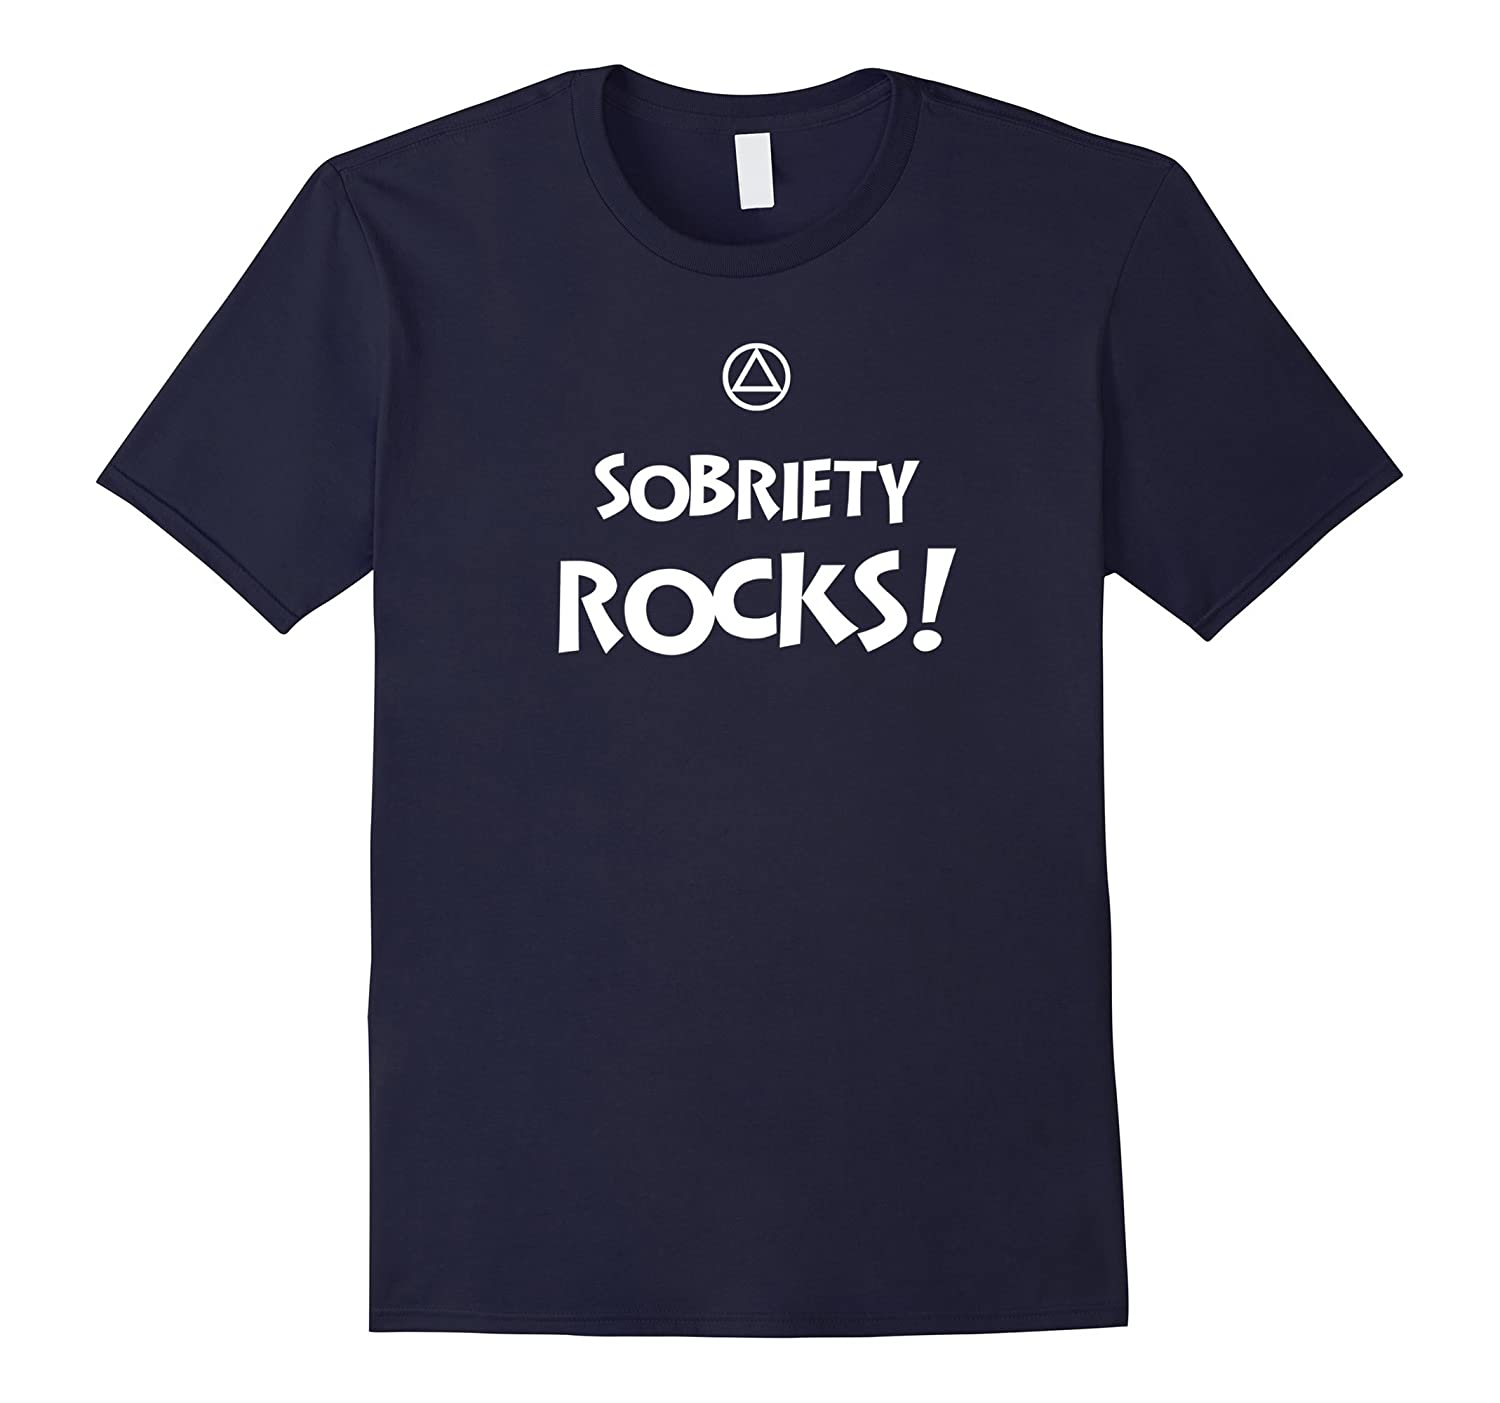 'Sobriety Rocks' – AA 12 Step Recovery Slogan T-Shirt